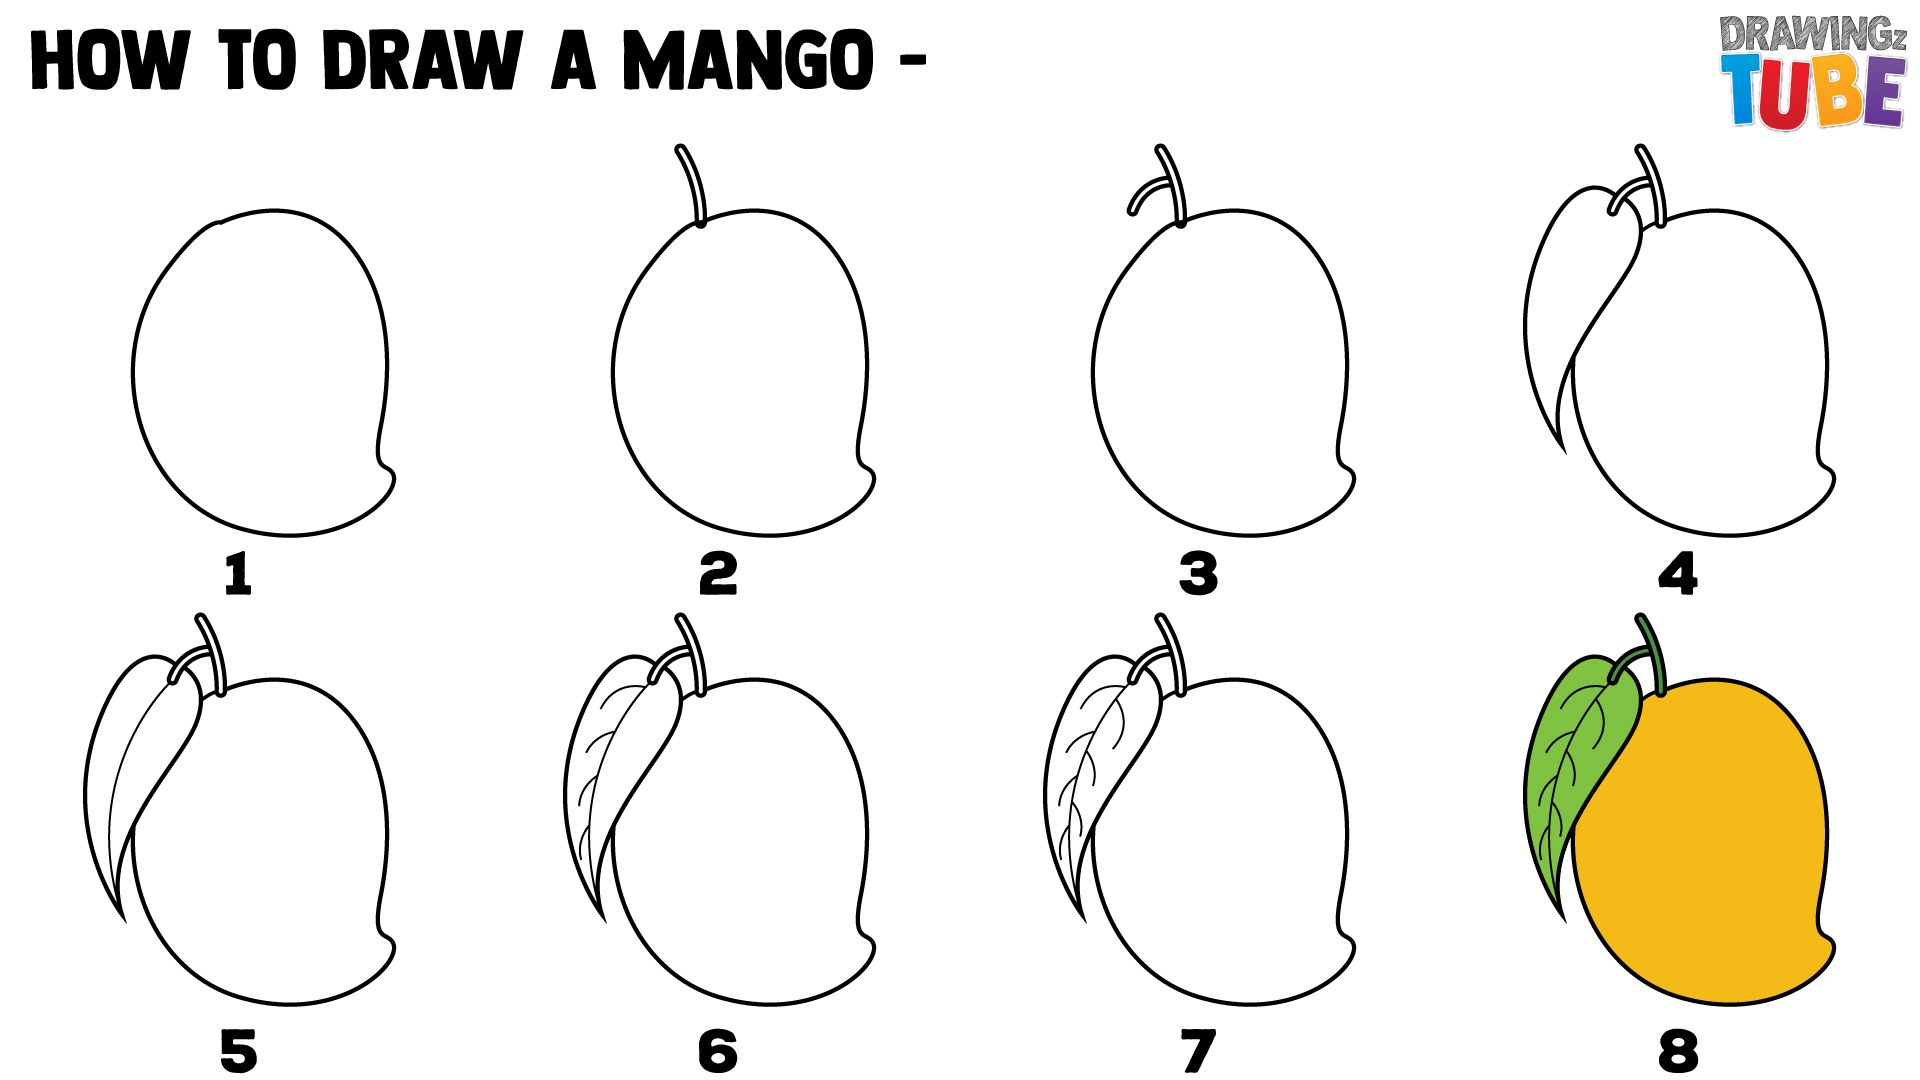 How To Draw A Mango For Kids Drawing For Kids Fruits Drawing Drawing Lessons For Kids